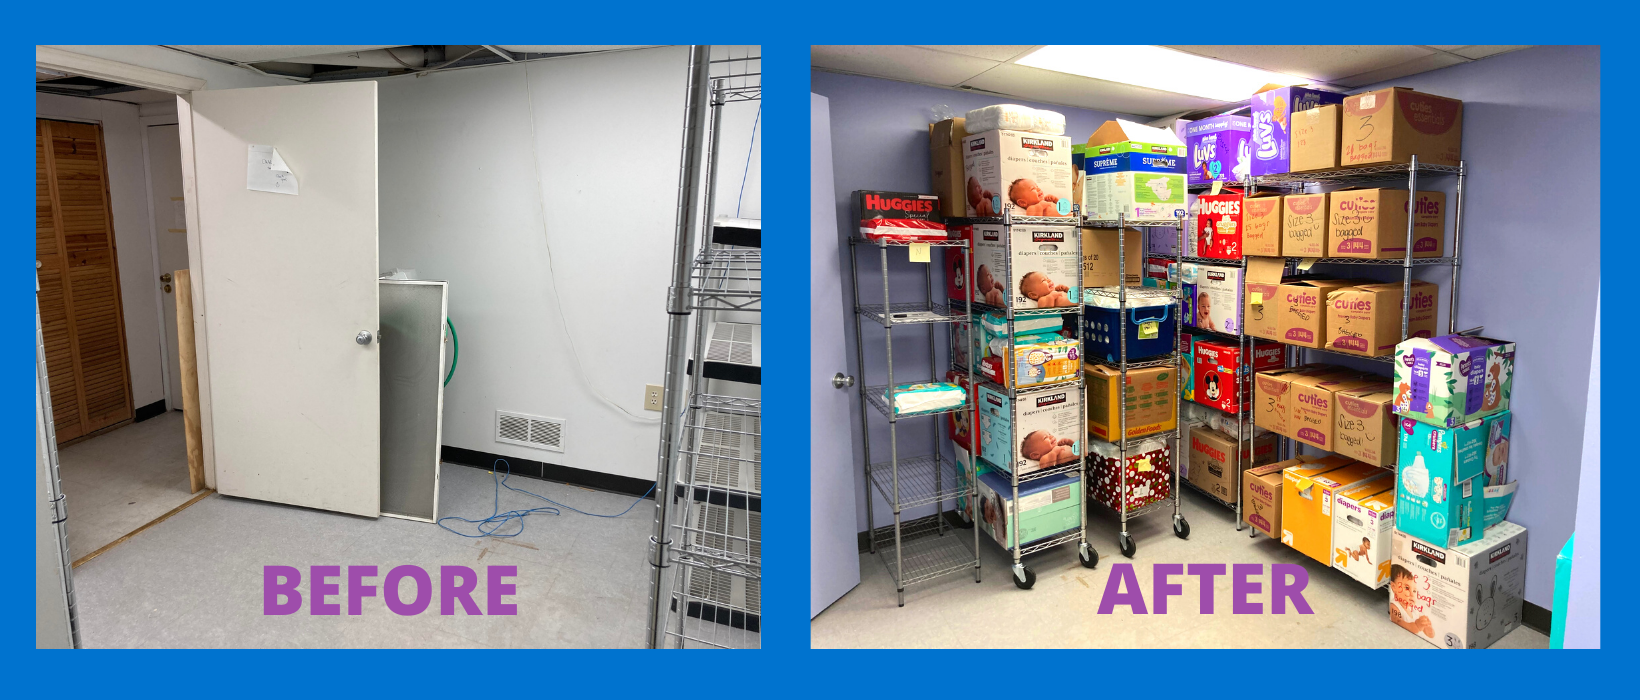 Before and After of Diaper Pantry. Before photo: empty room with white walls. After: room painted light purple with metal shelving lining two of the walls. The shelves are filled with boxes of diapers.